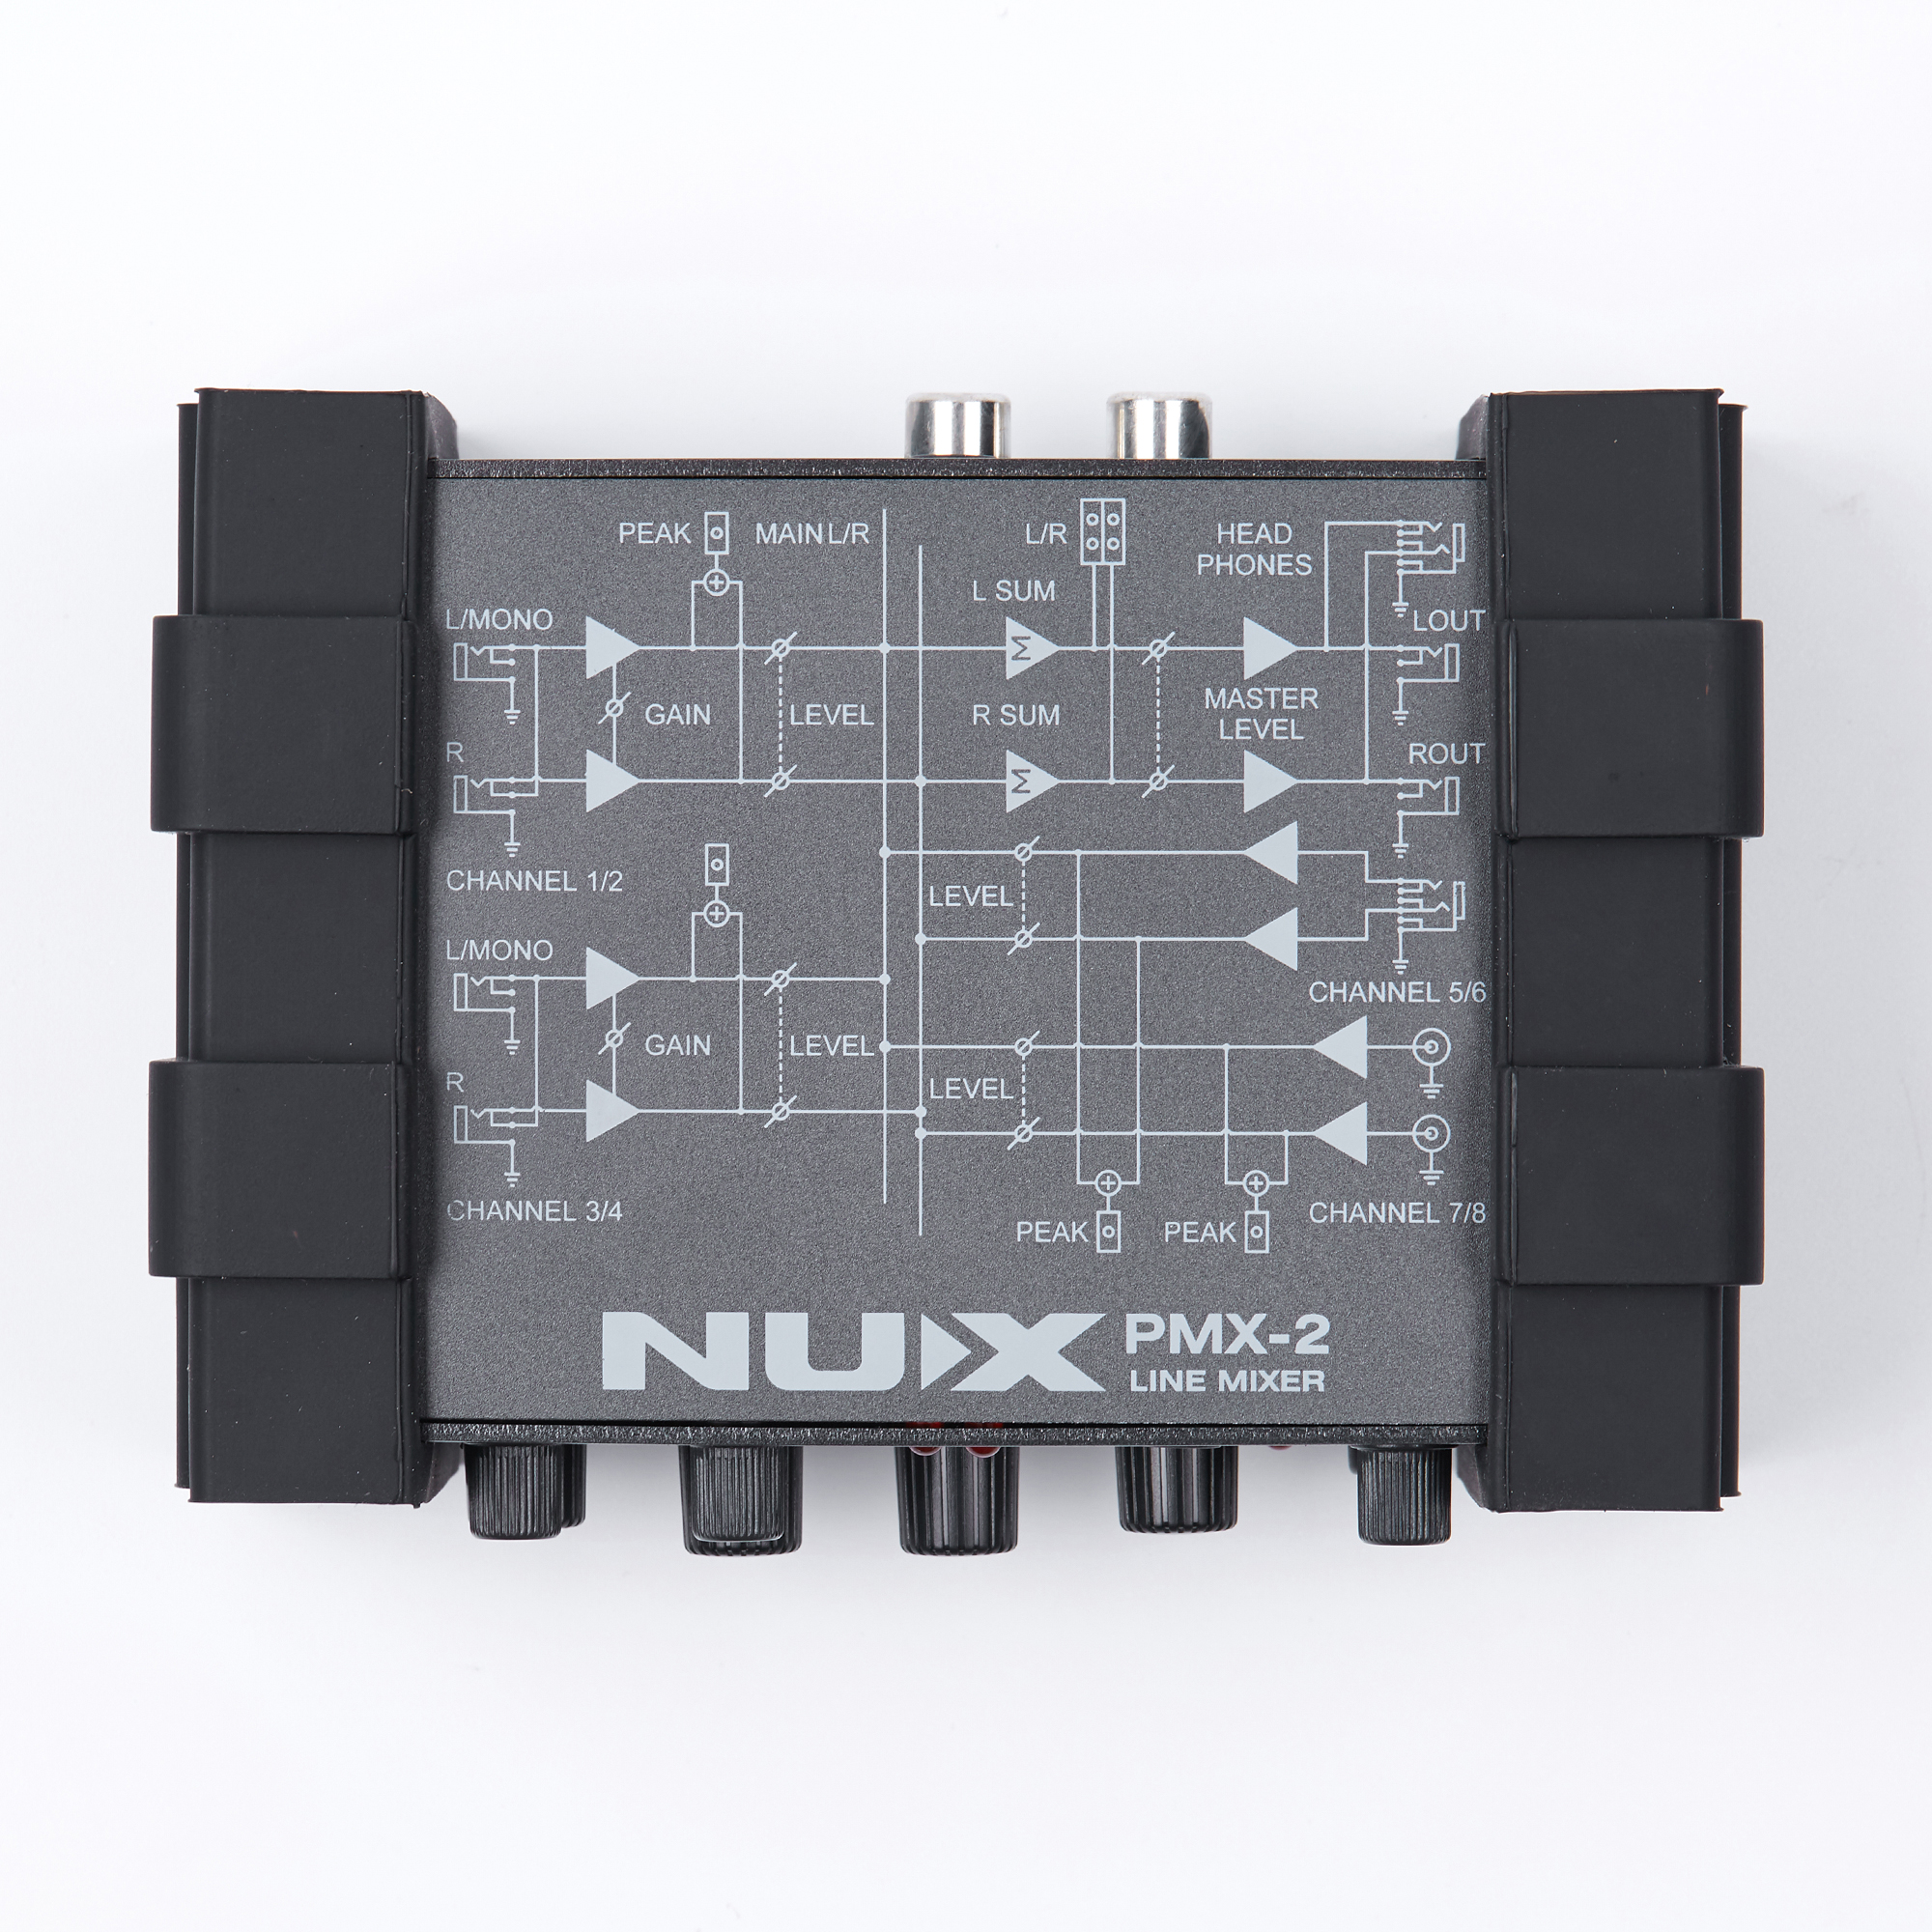 Gain Control 8 Inputs and 2 Outputs NUX PMX-2 Multi-Channel Mini Mixer 30 Musical Instruments Accessories for Guitar Bass Player вытяжка elikor пергола 60п 650 п3л